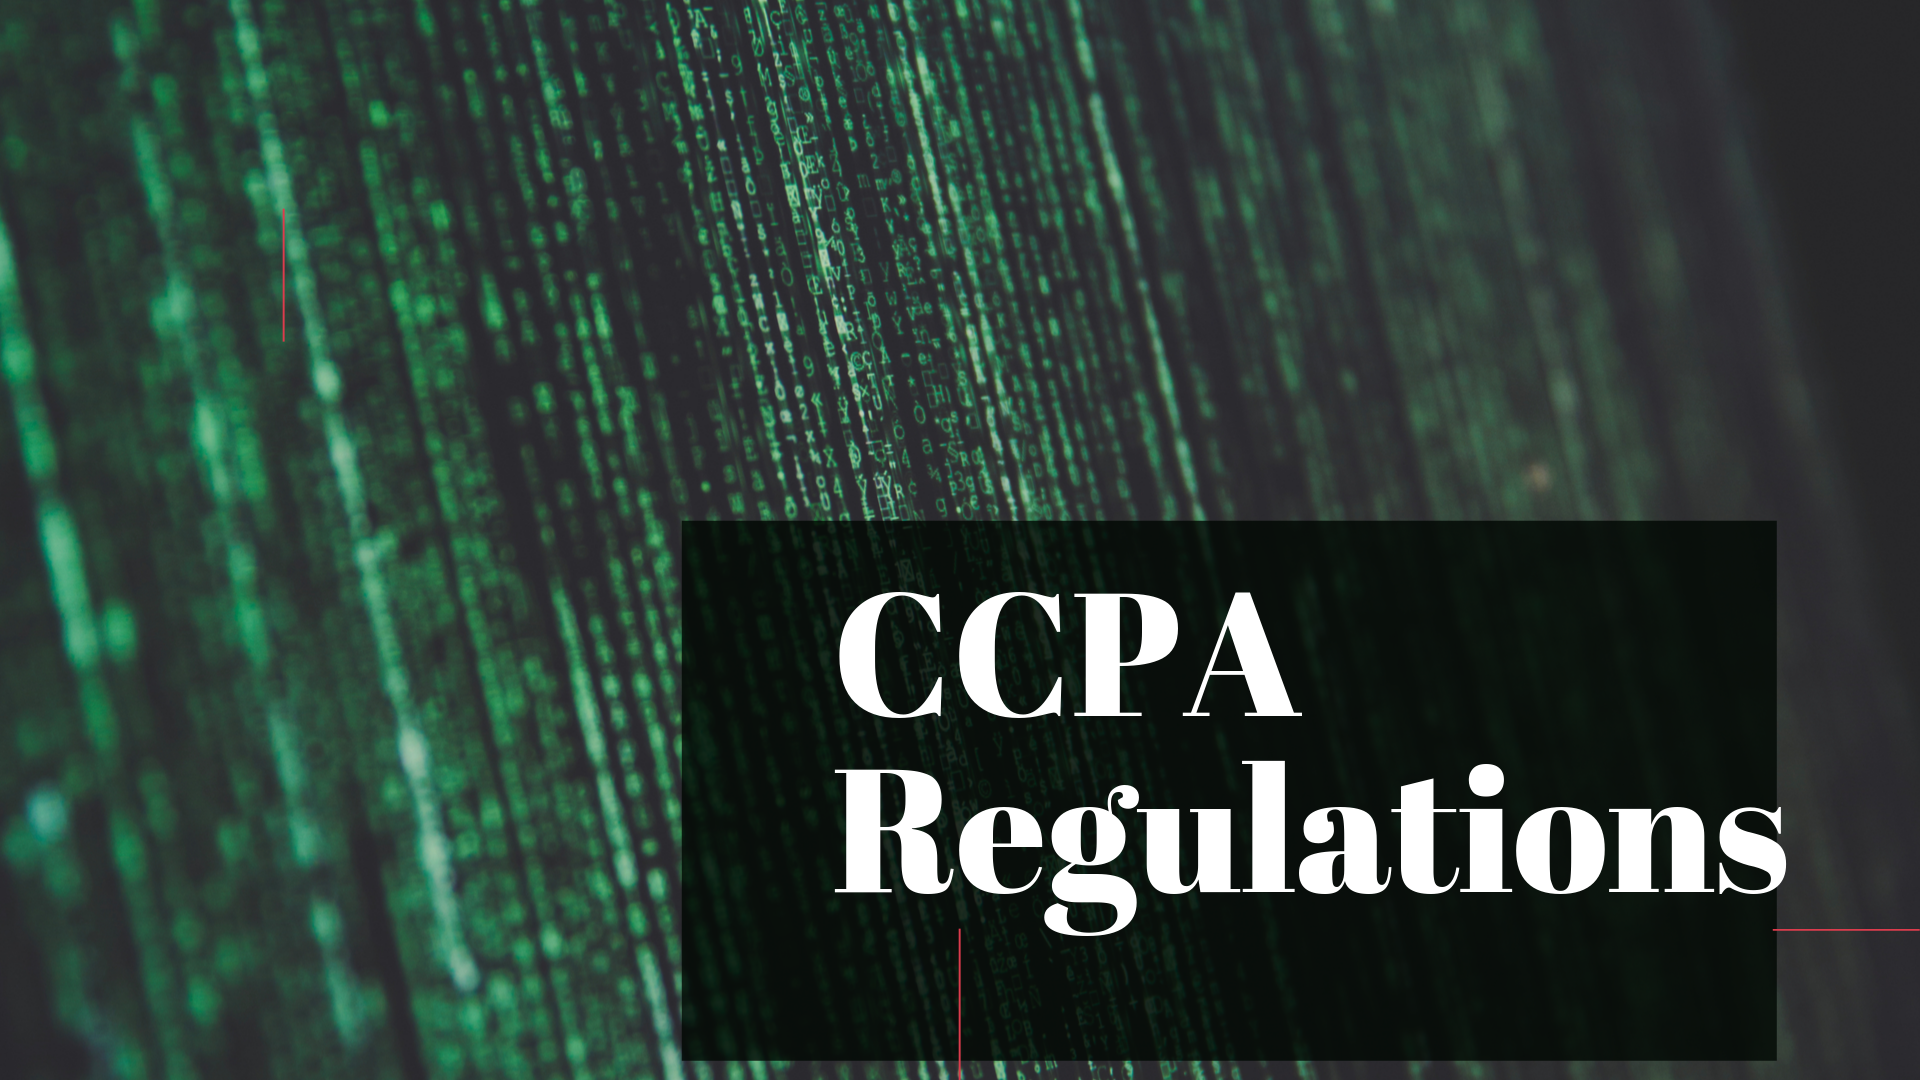 CCPA Regulations